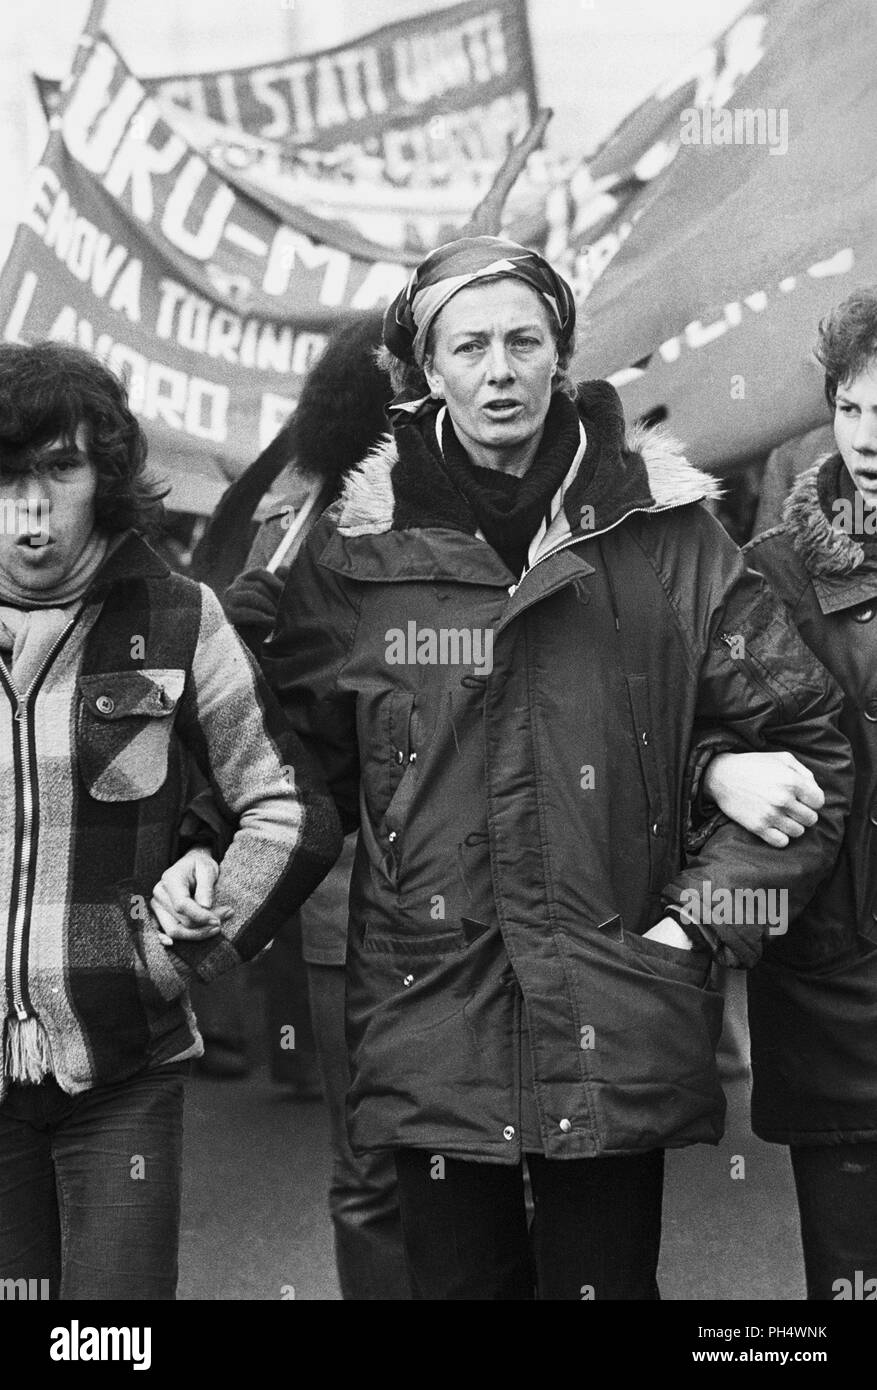 The great English actress Vanessa Redgrave has always been politically engaged, here in Milan (Italy) in January 1978 participates in a demonstration during the European international march organized by the grave (Trozkista inspired) for the defense of workers' rights. - Stock Image